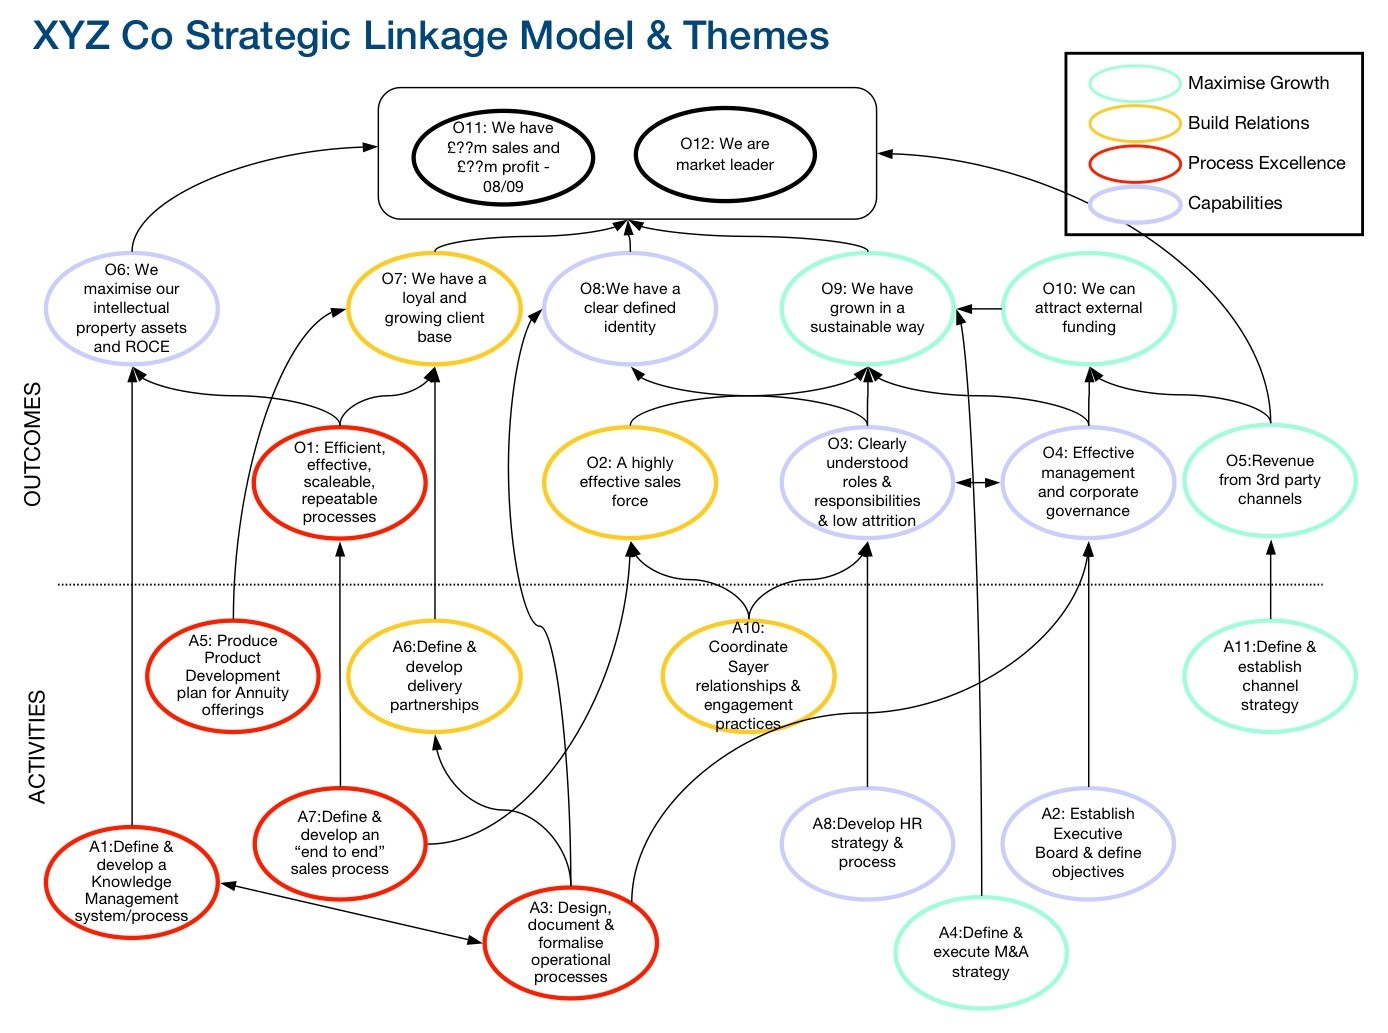 Example of a Strategic Linkage Model